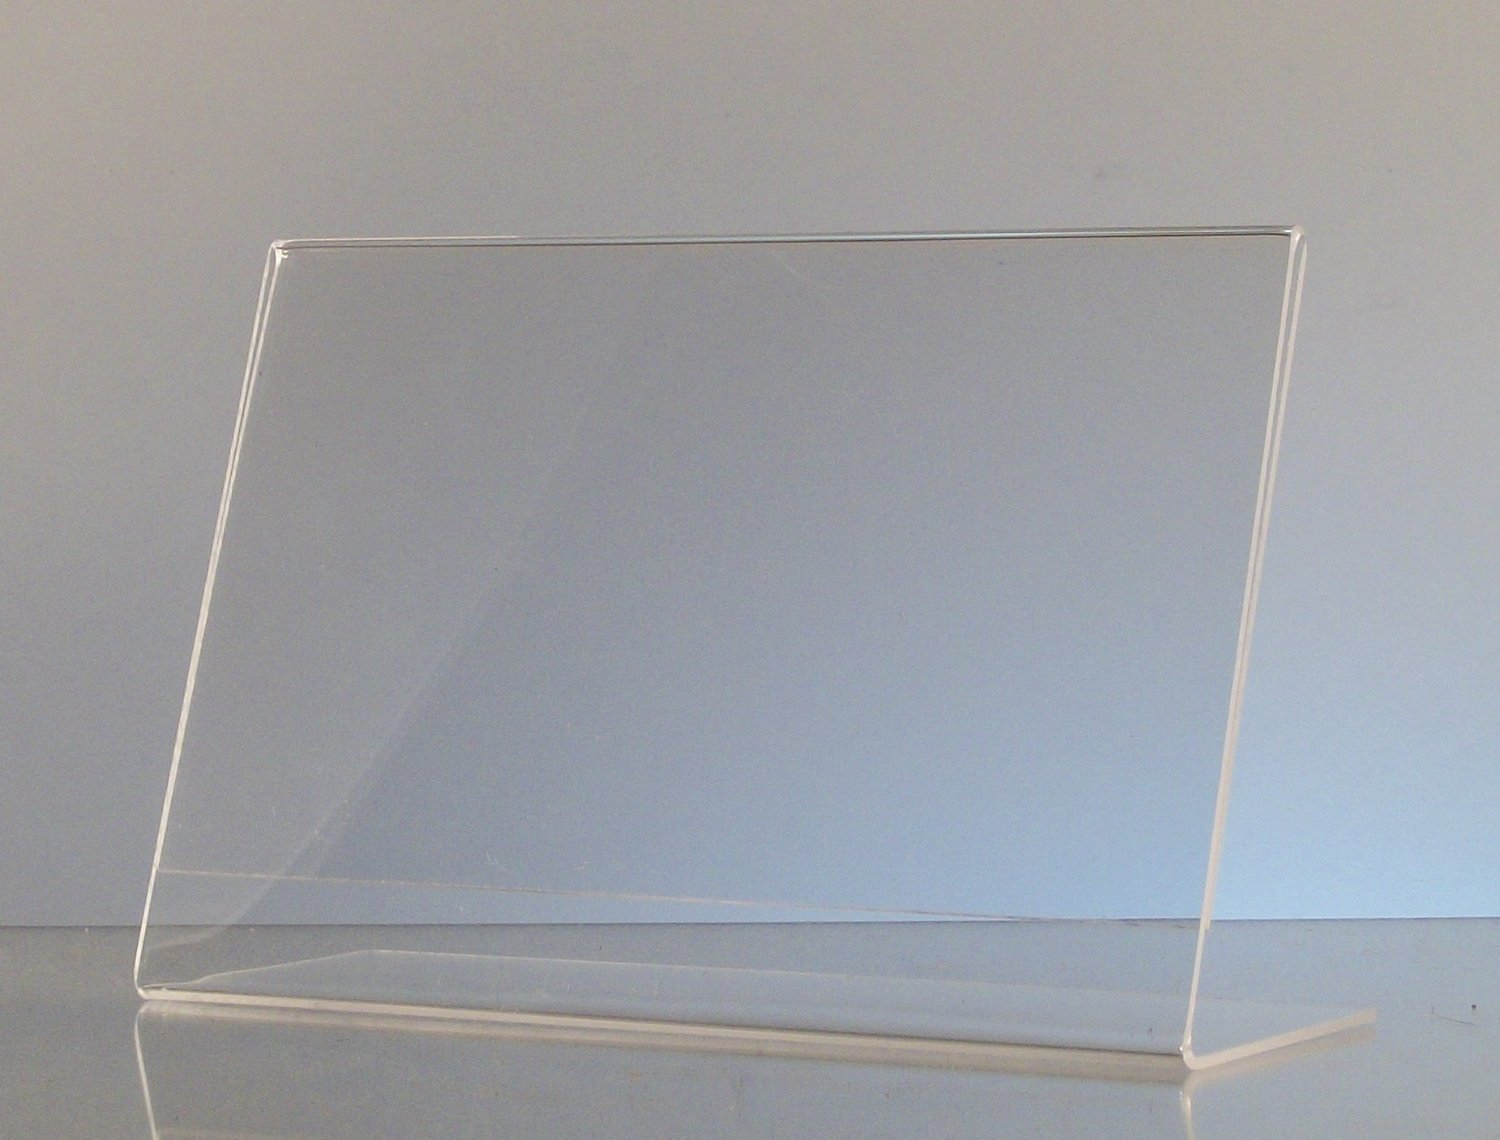 (10 Pack) 10x15CM Clear Acrylic Slant Back Ad/Sign Holder, Plastic Slanted Picture/Photo Frame 6